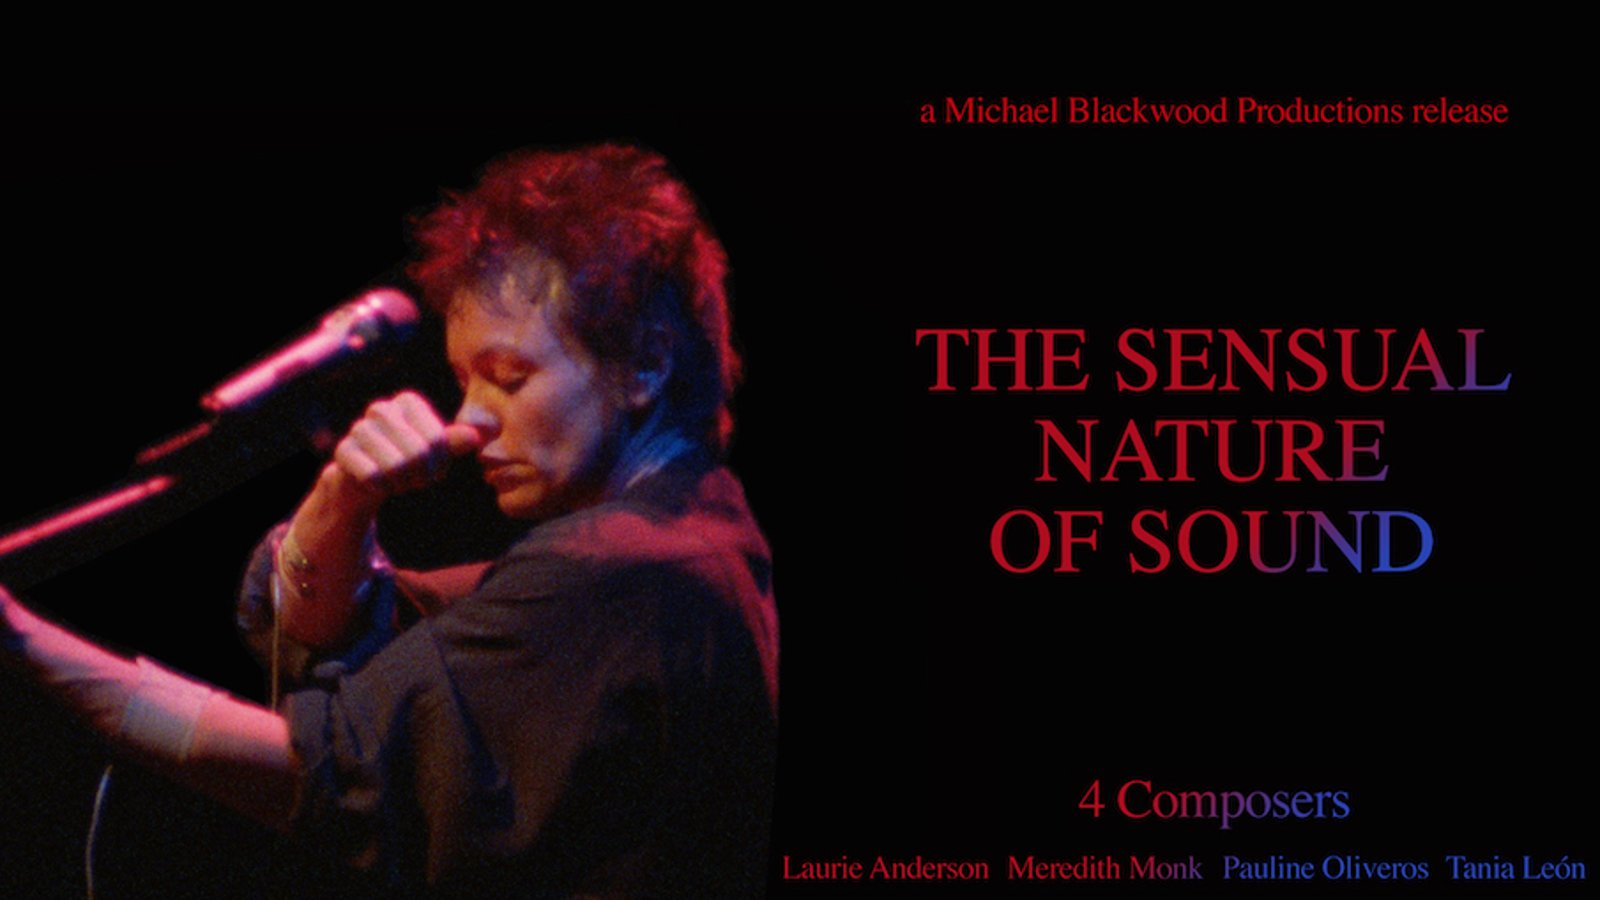 The Sensual Nature of Sound - 4 Composers Laurie Anderson Tania Leon Meredith Monk Pauline Oliveros